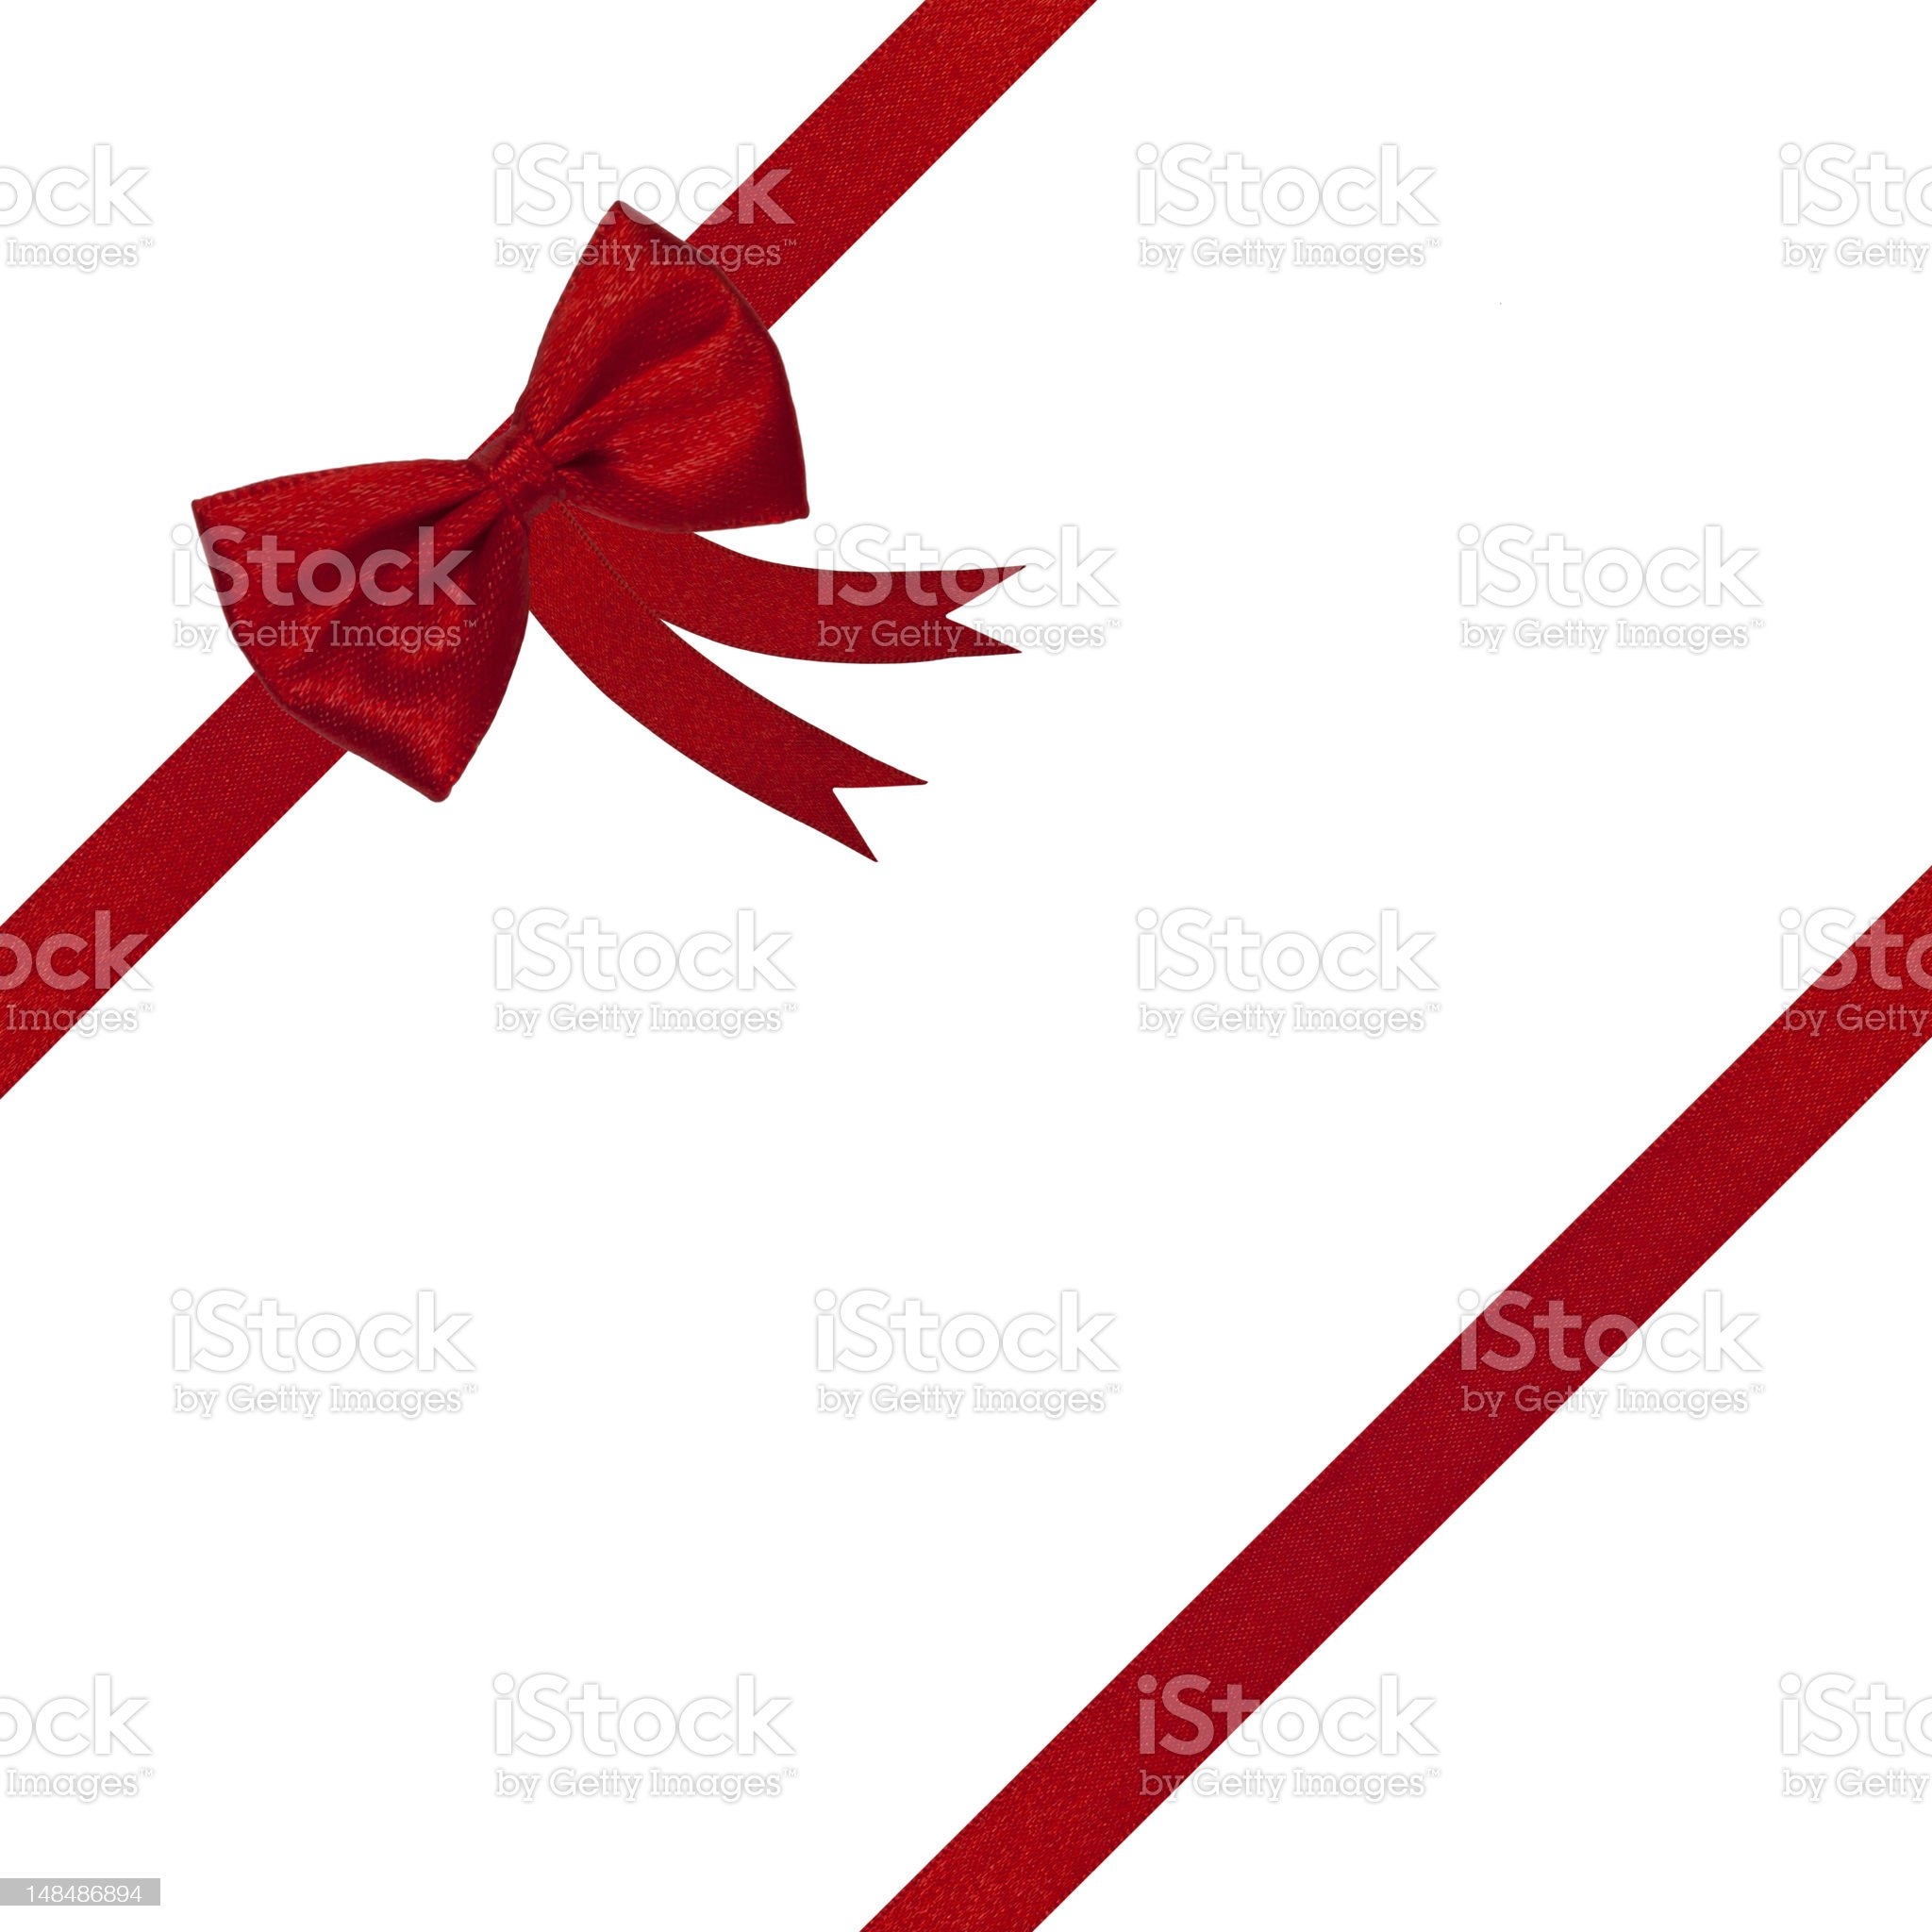 red ribbon gift bow present isolated on white royalty-free stock photo